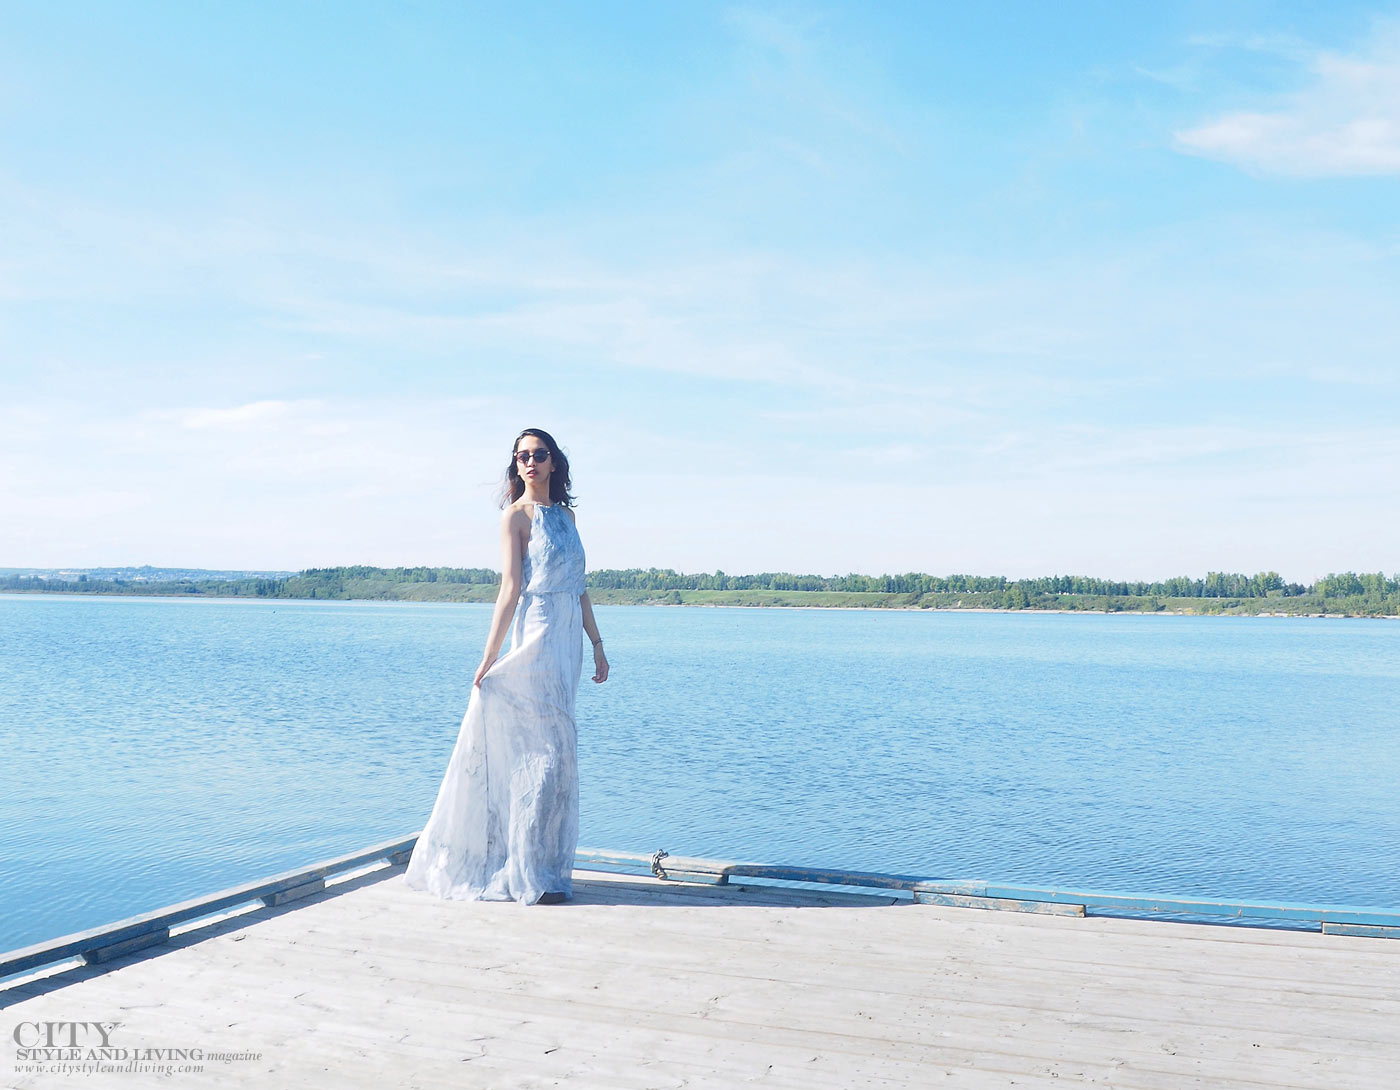 The Editors Notebook calgary fashion blogger wearing a maxi dress at glenmore resevoir boardwalk walking